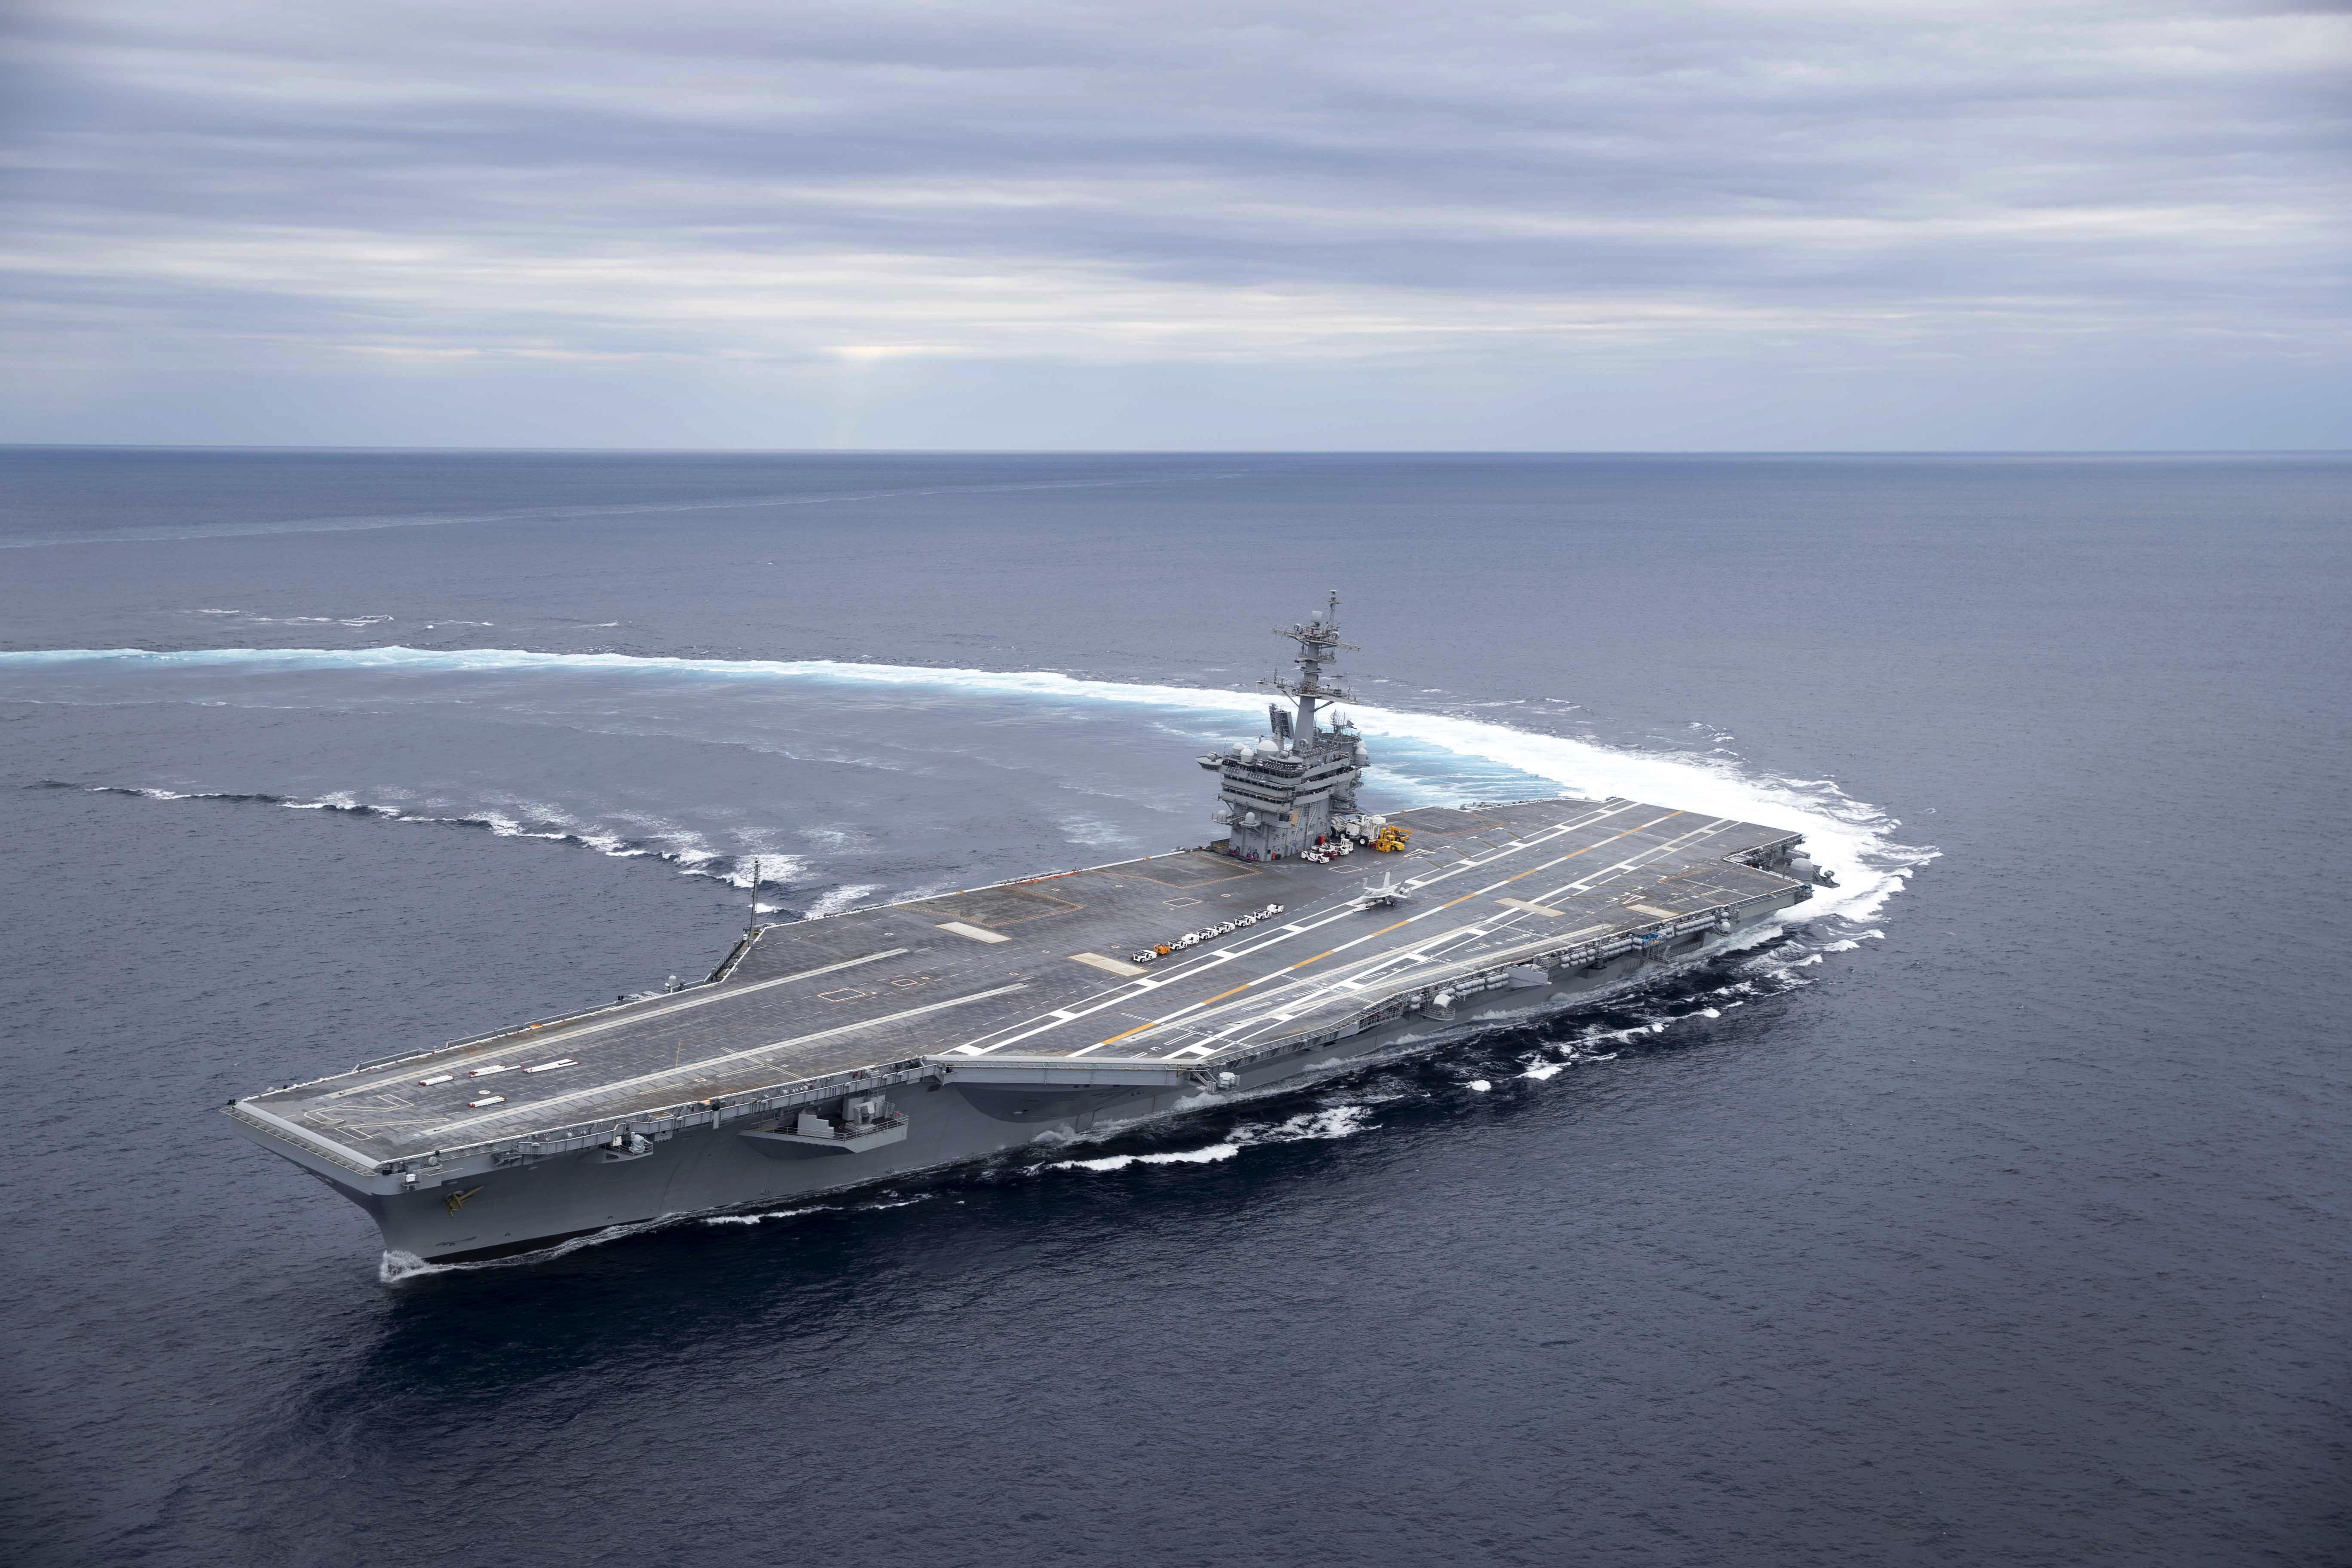 Navy Moves Carrier Uss Abraham Lincoln 4 More Ships For